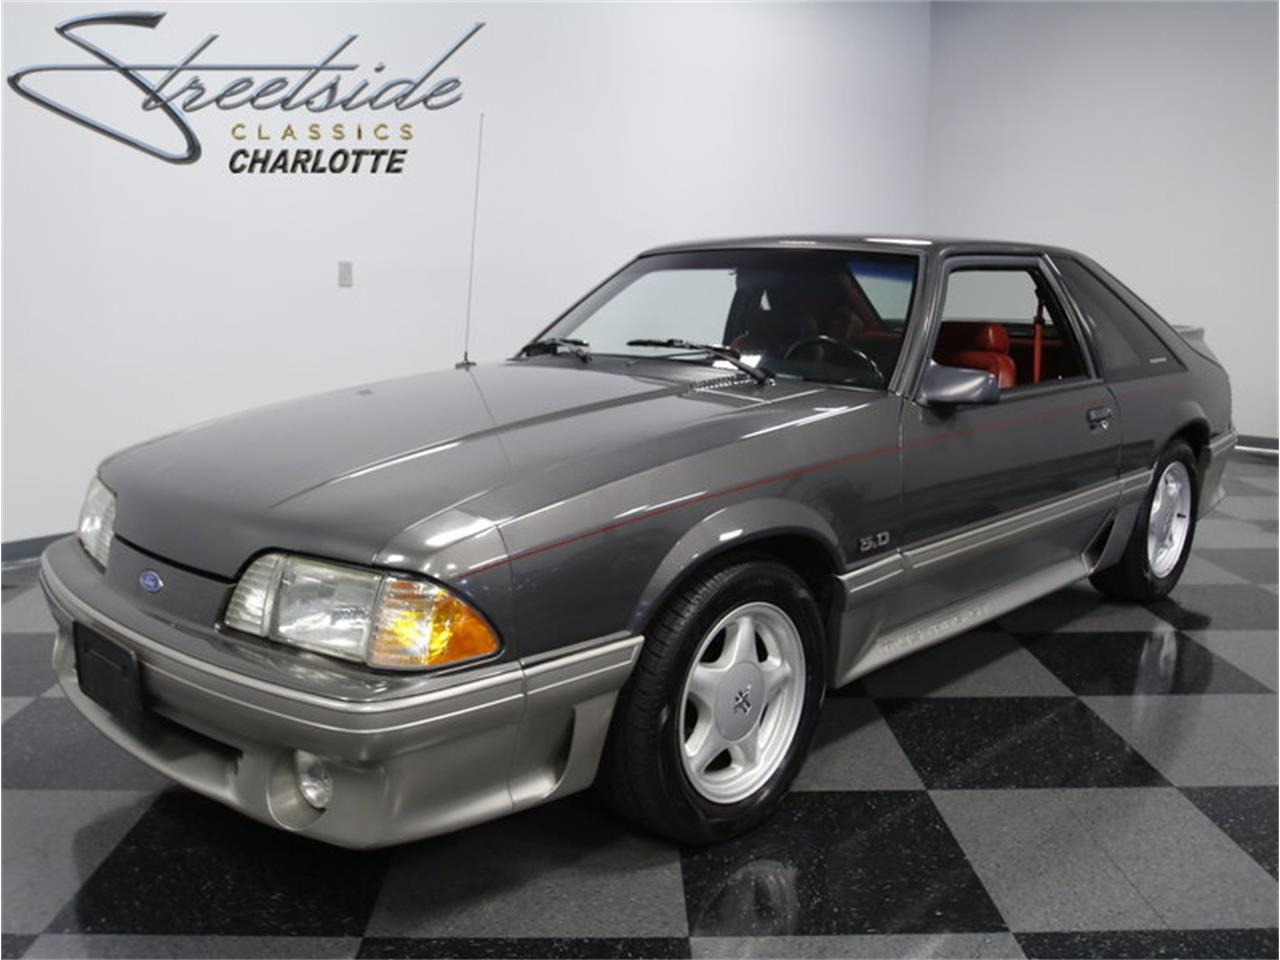 91 Mustang Gt >> For Sale 1991 Ford Mustang Gt In Concord North Carolina